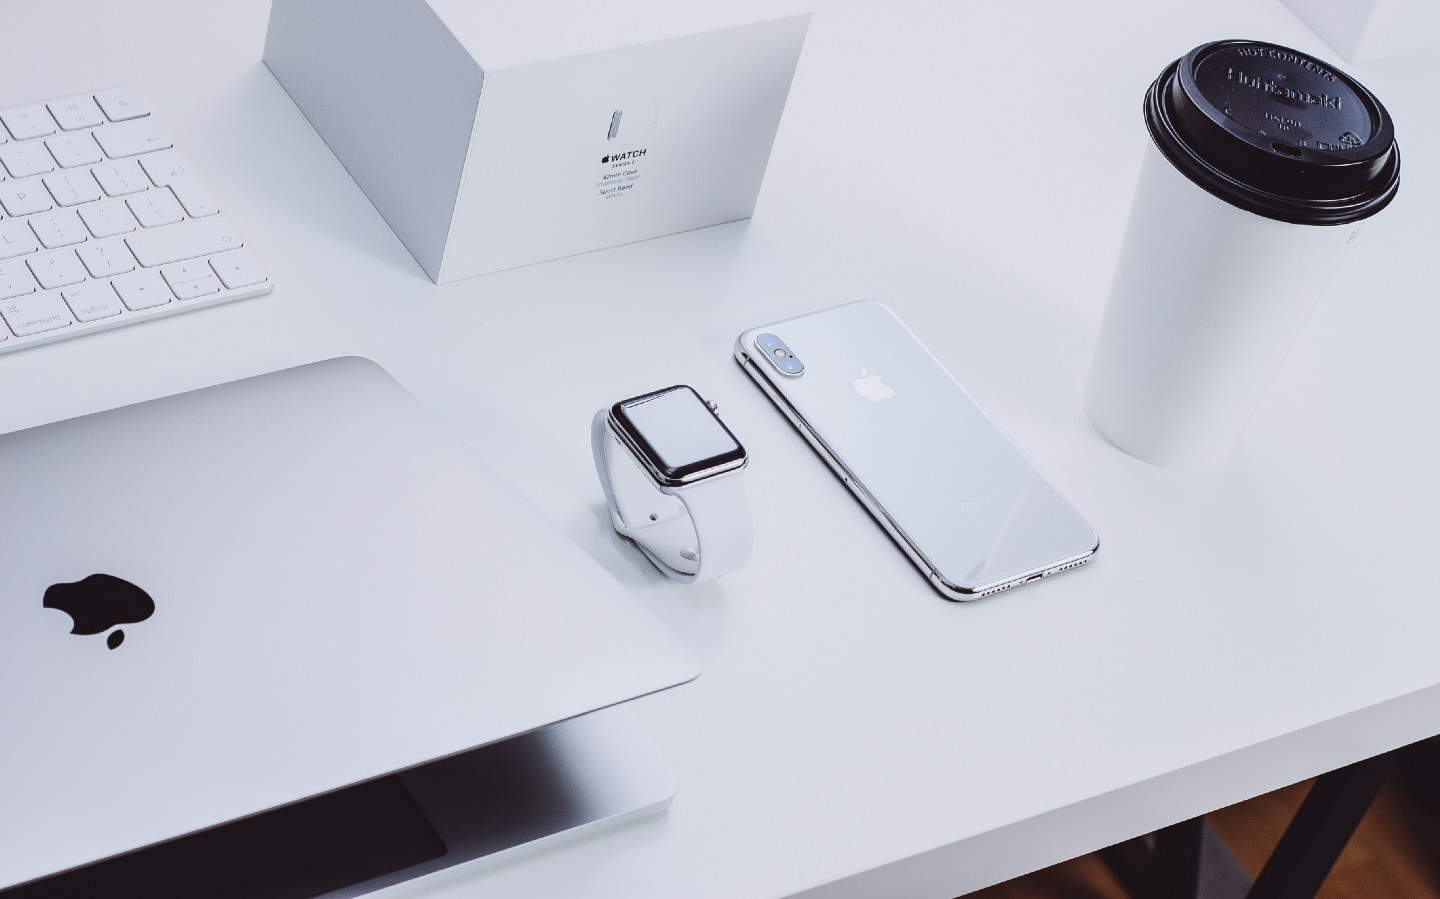 A bunch of apple products in a very minimal setting, extremely white and clean looking